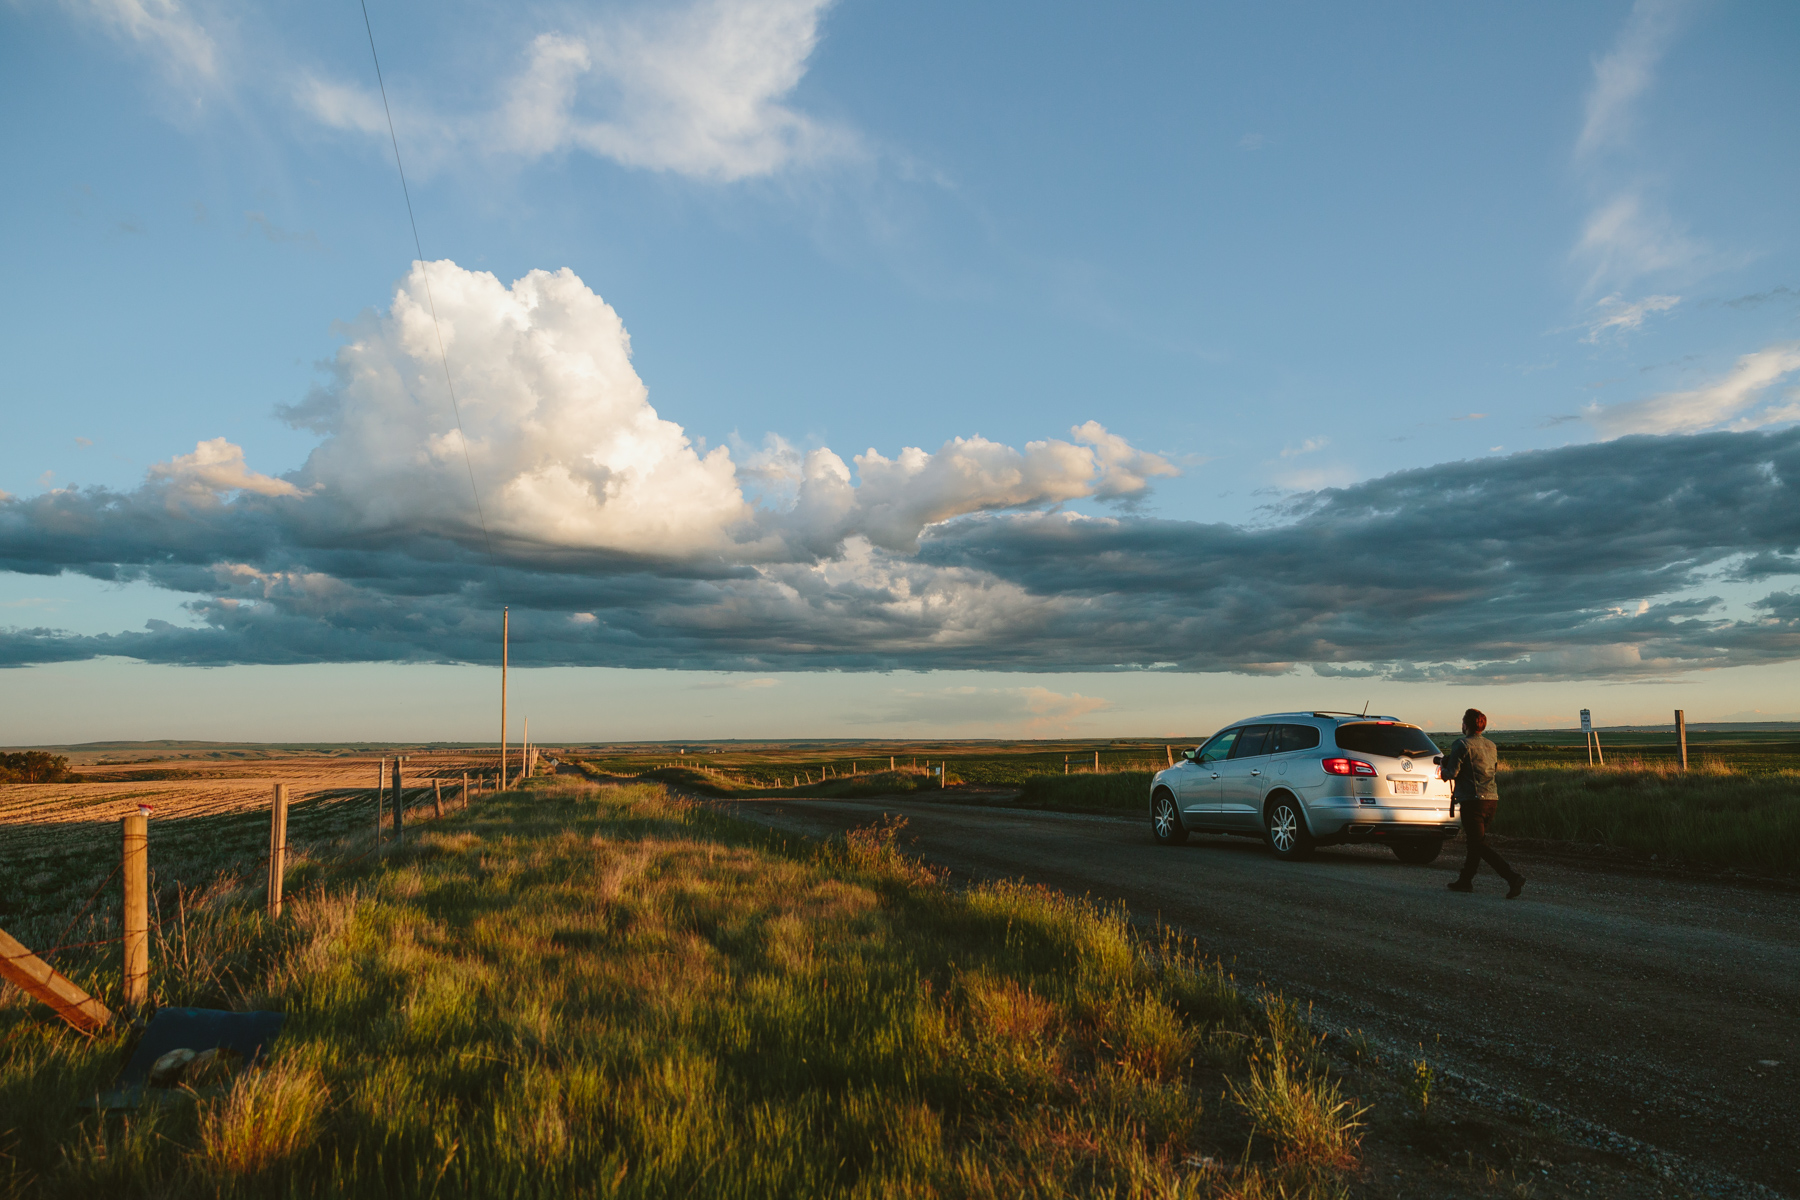 alberta-landscape-lifestyle-photography-mikeseehagel-06